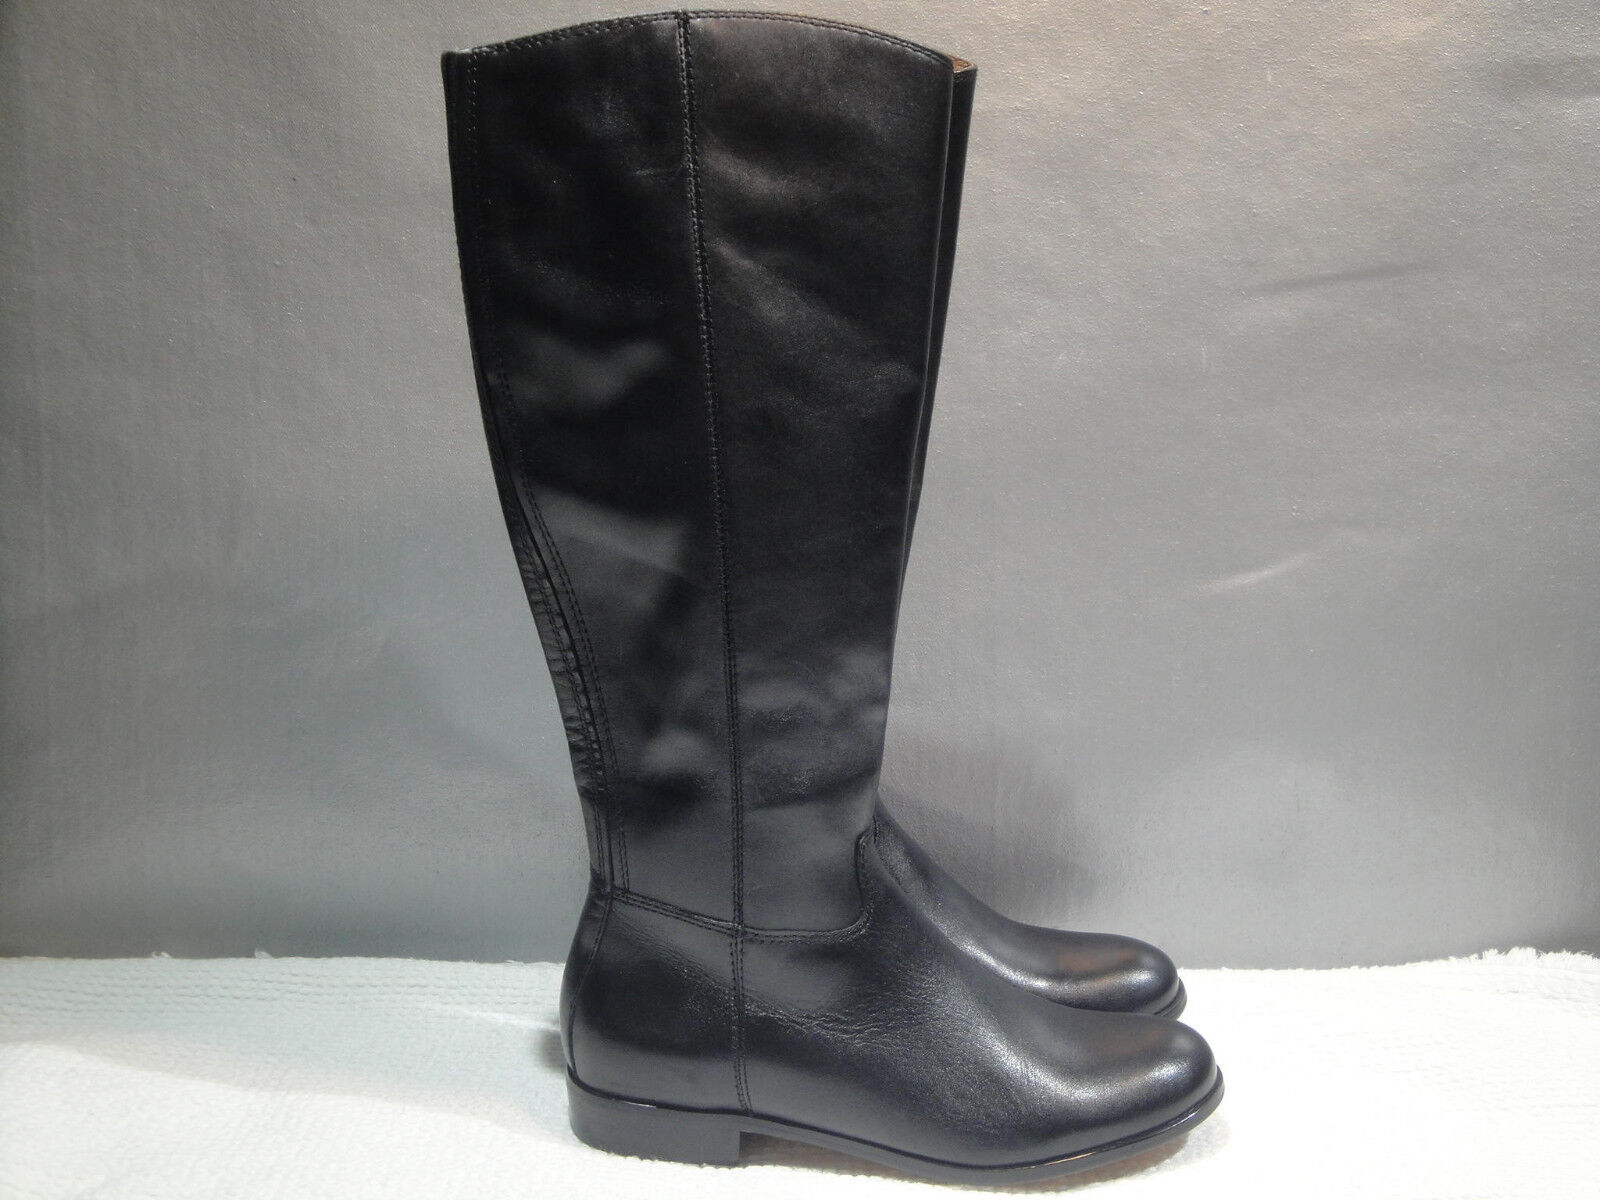 WOMENS NEW 6 CORSO COMO CLASSICS BLACK KNEE-HIGH TALL ZIPPER RIDING BOOTS